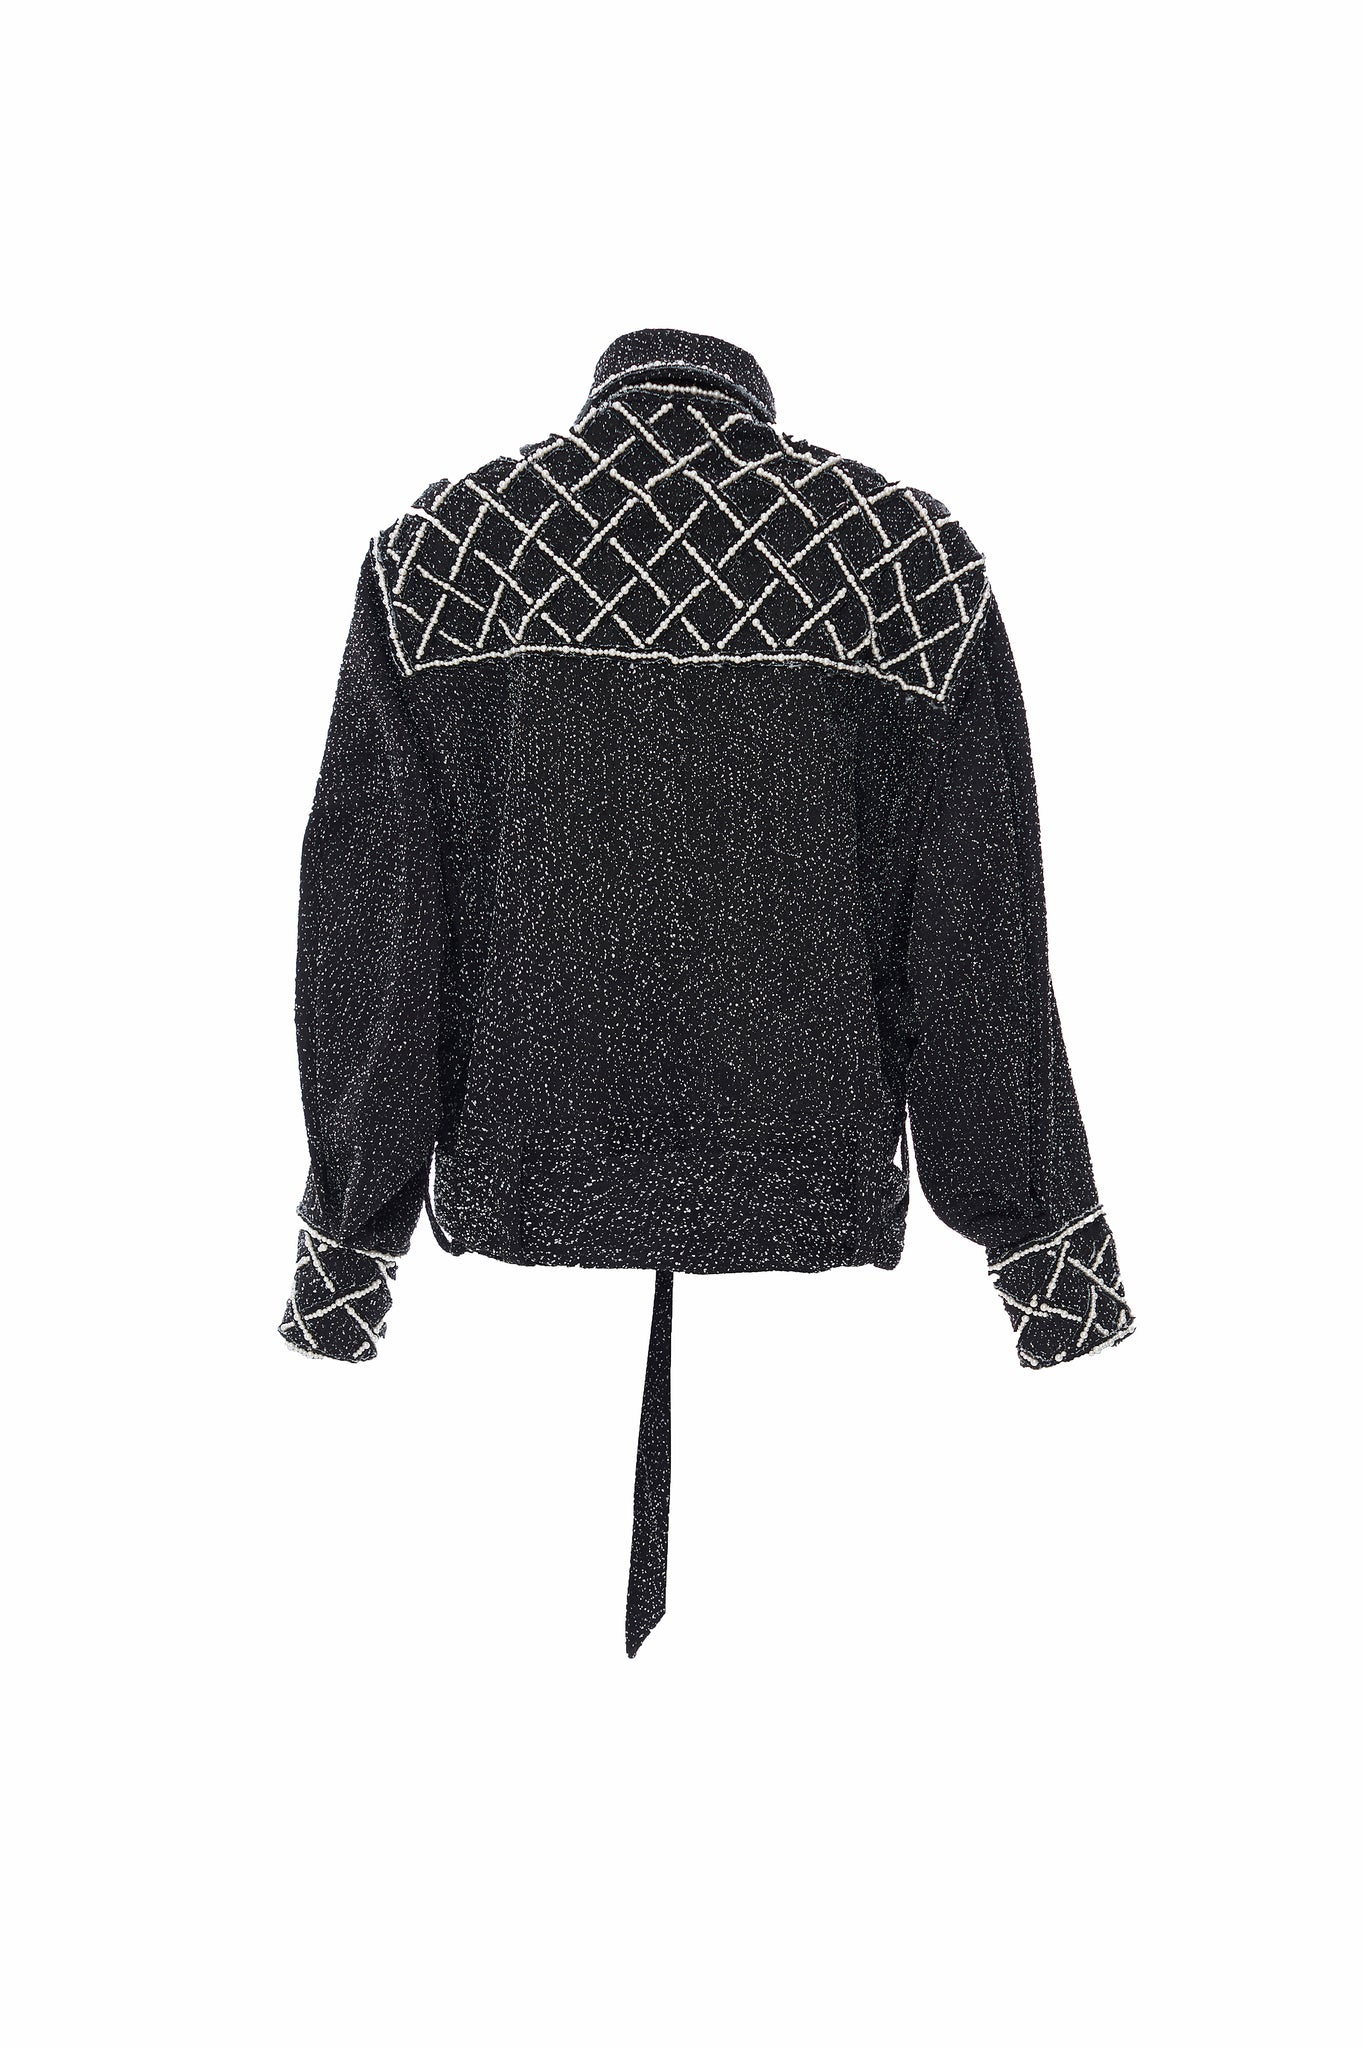 Black Oversized Pearl Gridded Beadings and Embroideries Denim Jacket